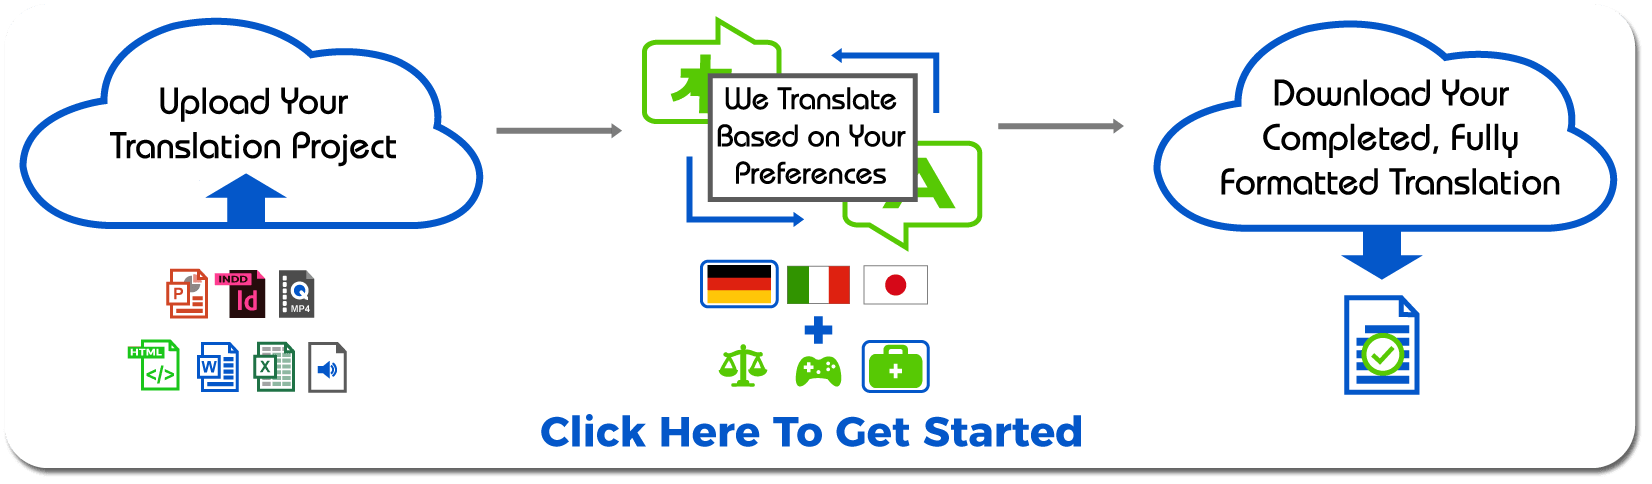 inWhatLanguage Process Graphic